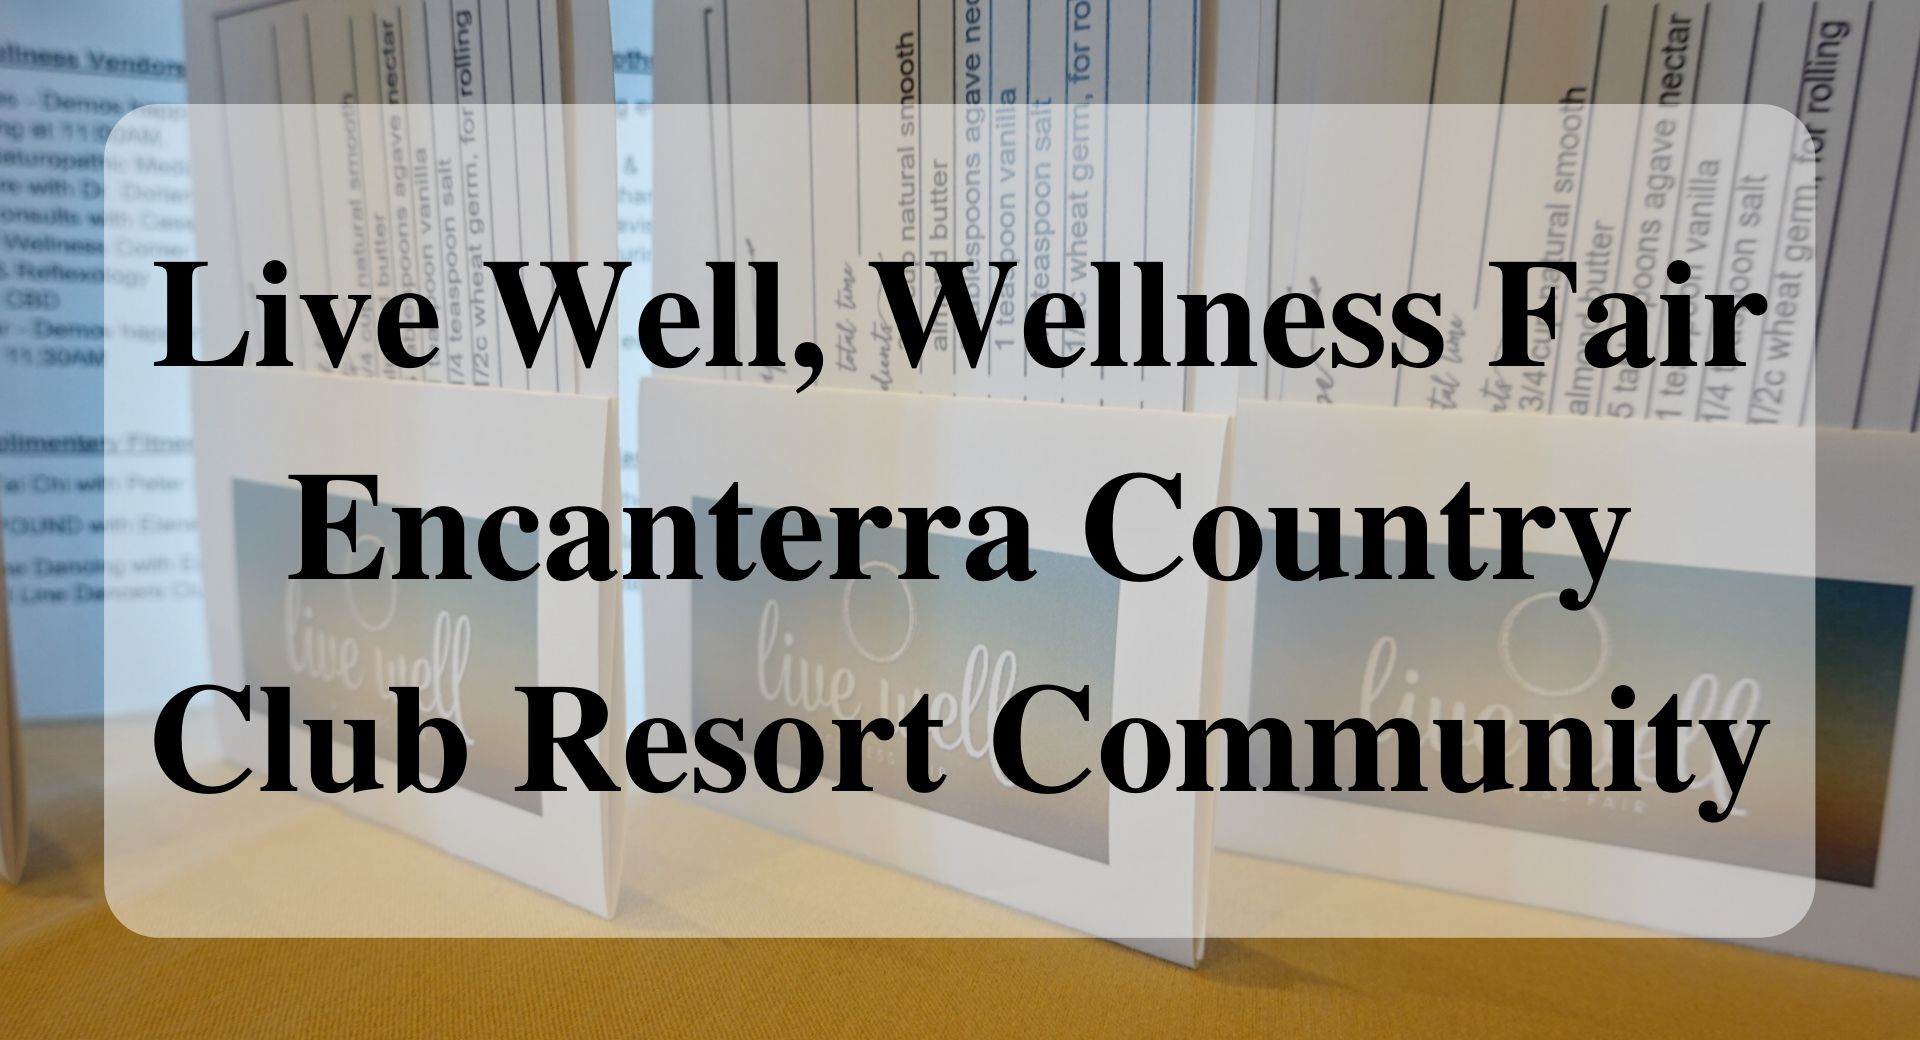 Live Well, Wellness Fair Encanterra Country Club Resort Community forever sabbatical